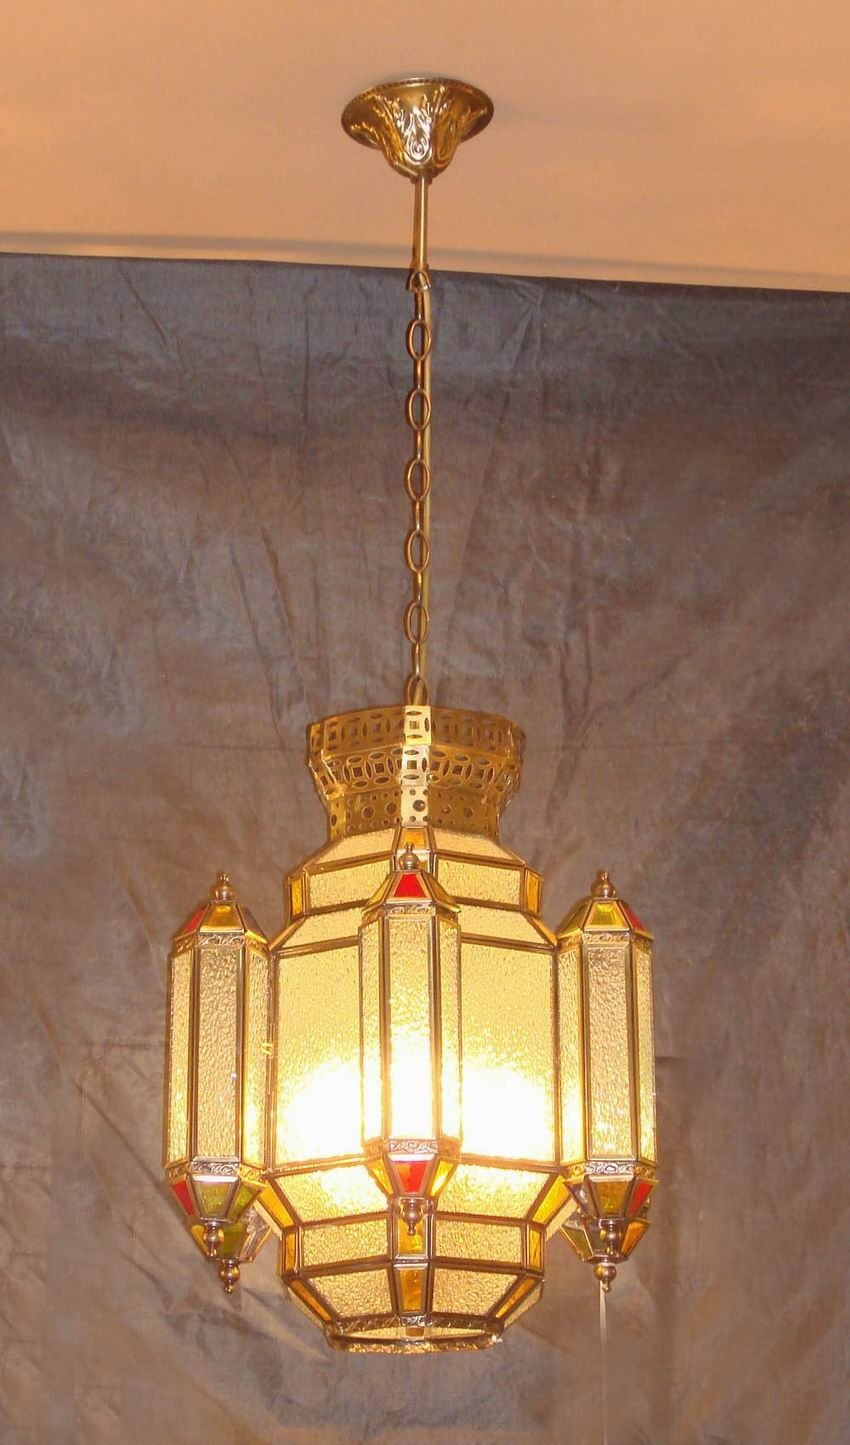 Brass Pendant Lamp with Glass Decorative 18958 Pendant Lighting